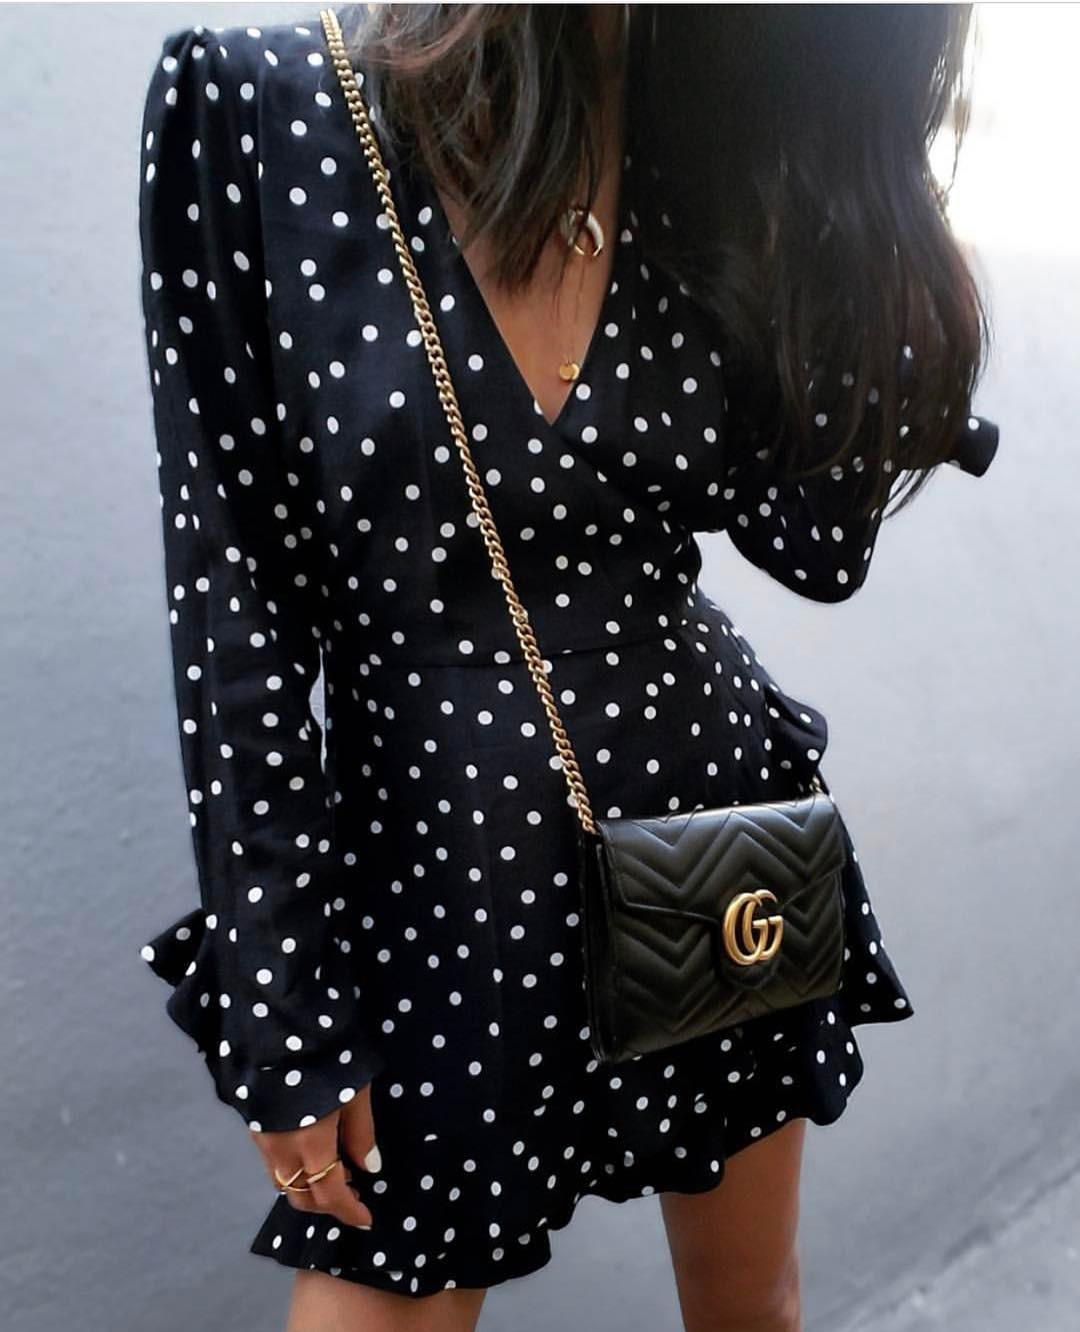 White Dotted Black Dress With Long Sleeves For Summer 2019